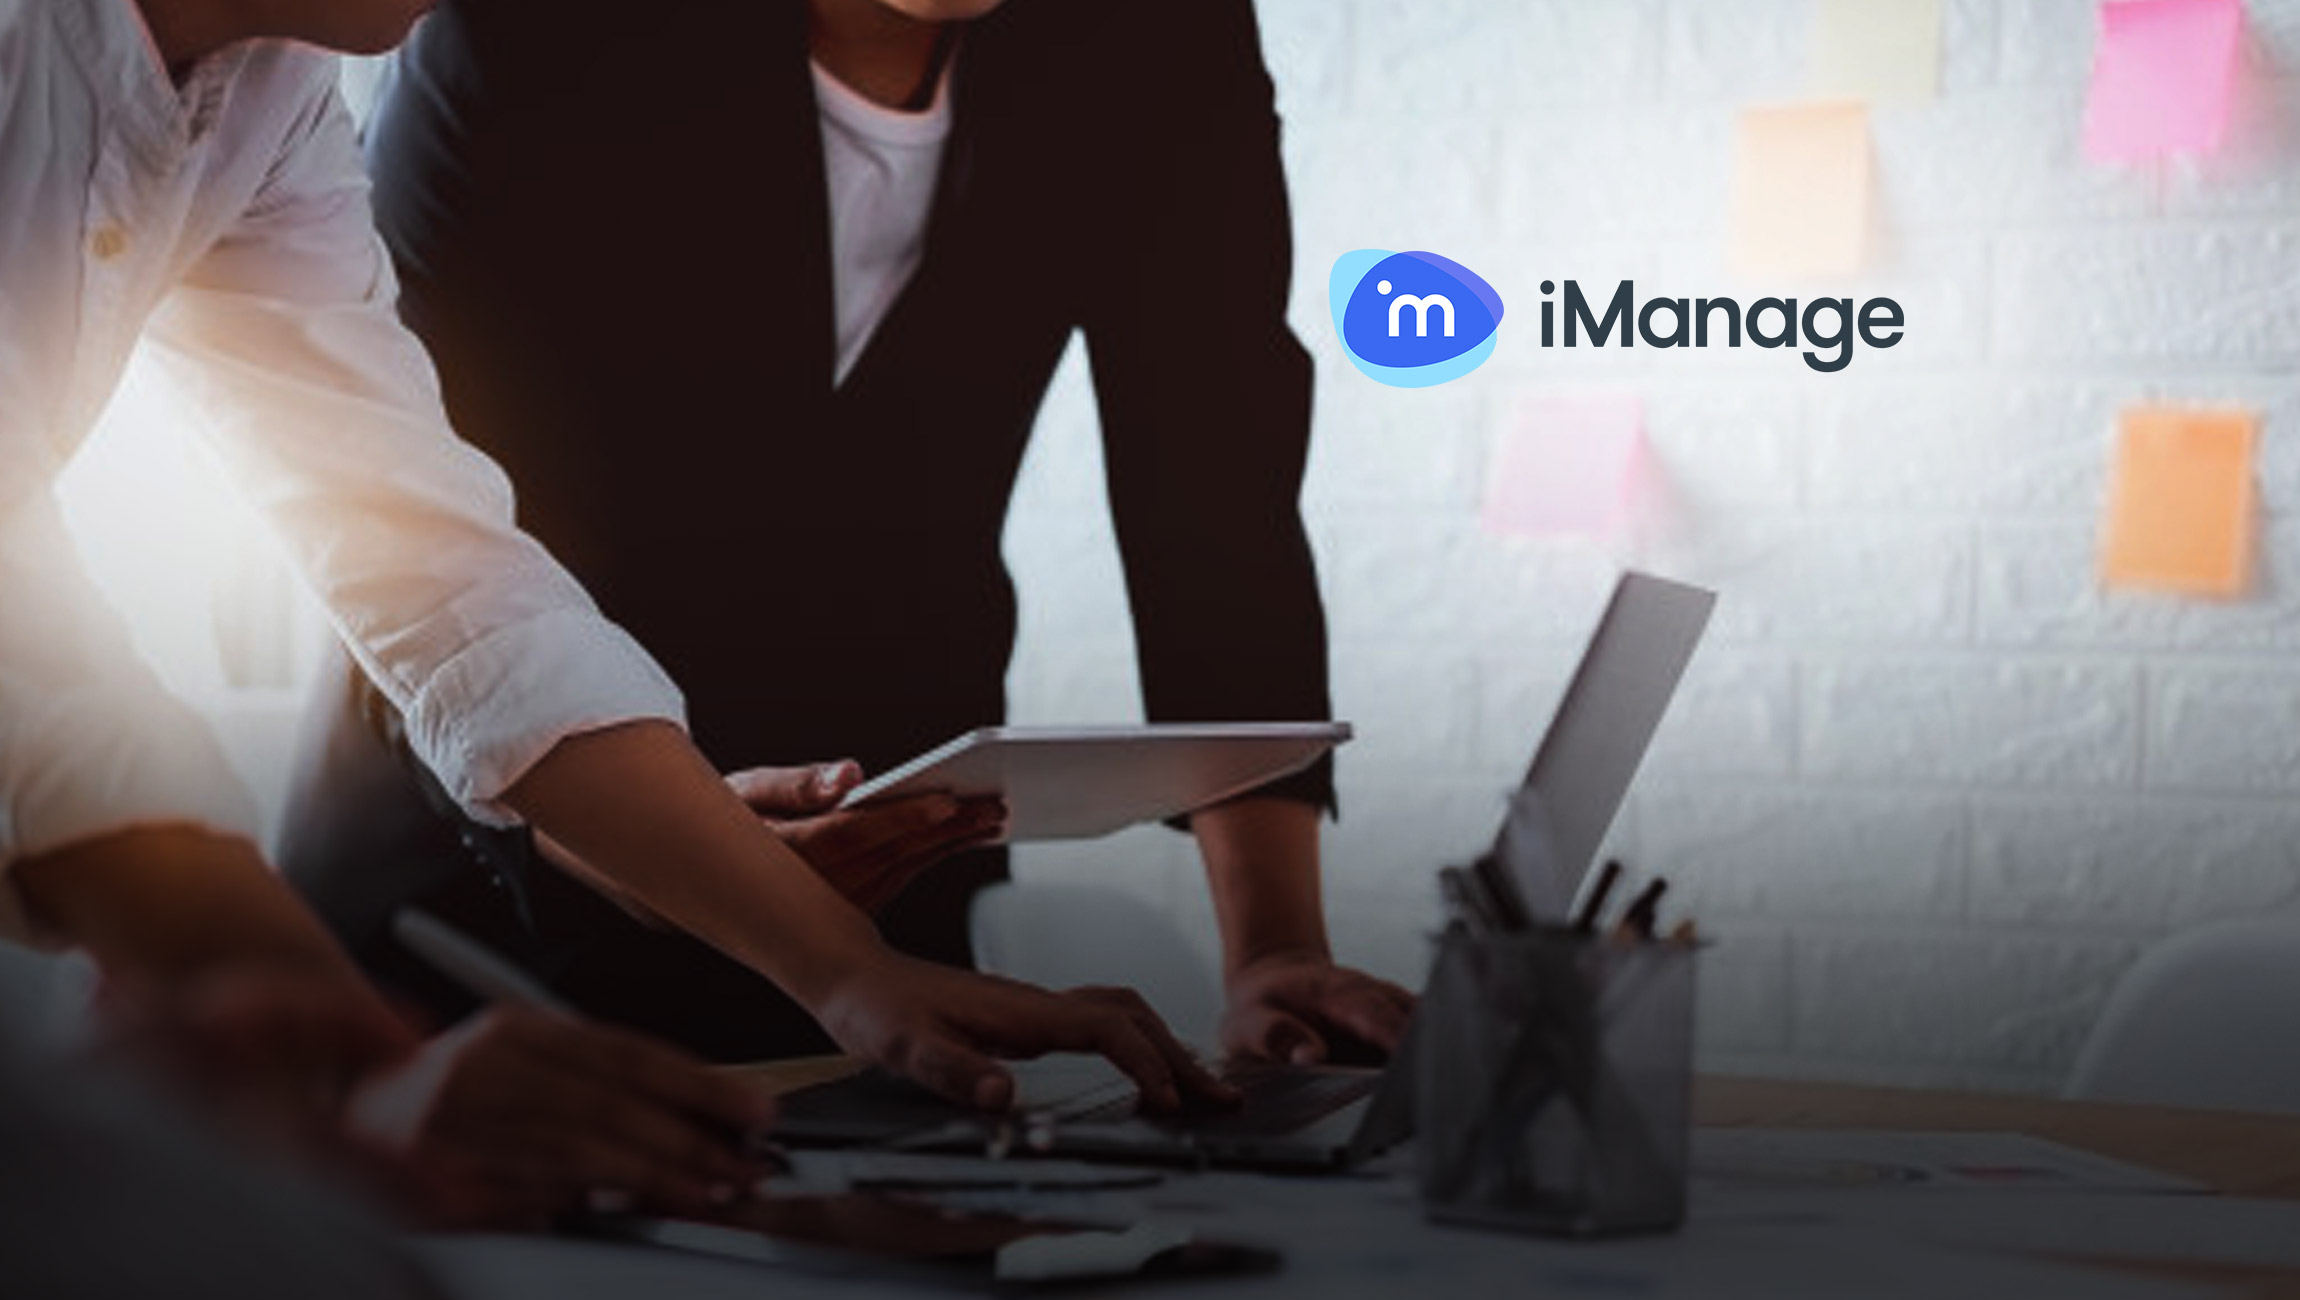 Australian Law Firm MinterEllison Takes Innovative Approach to Document Review with iManage RAVN